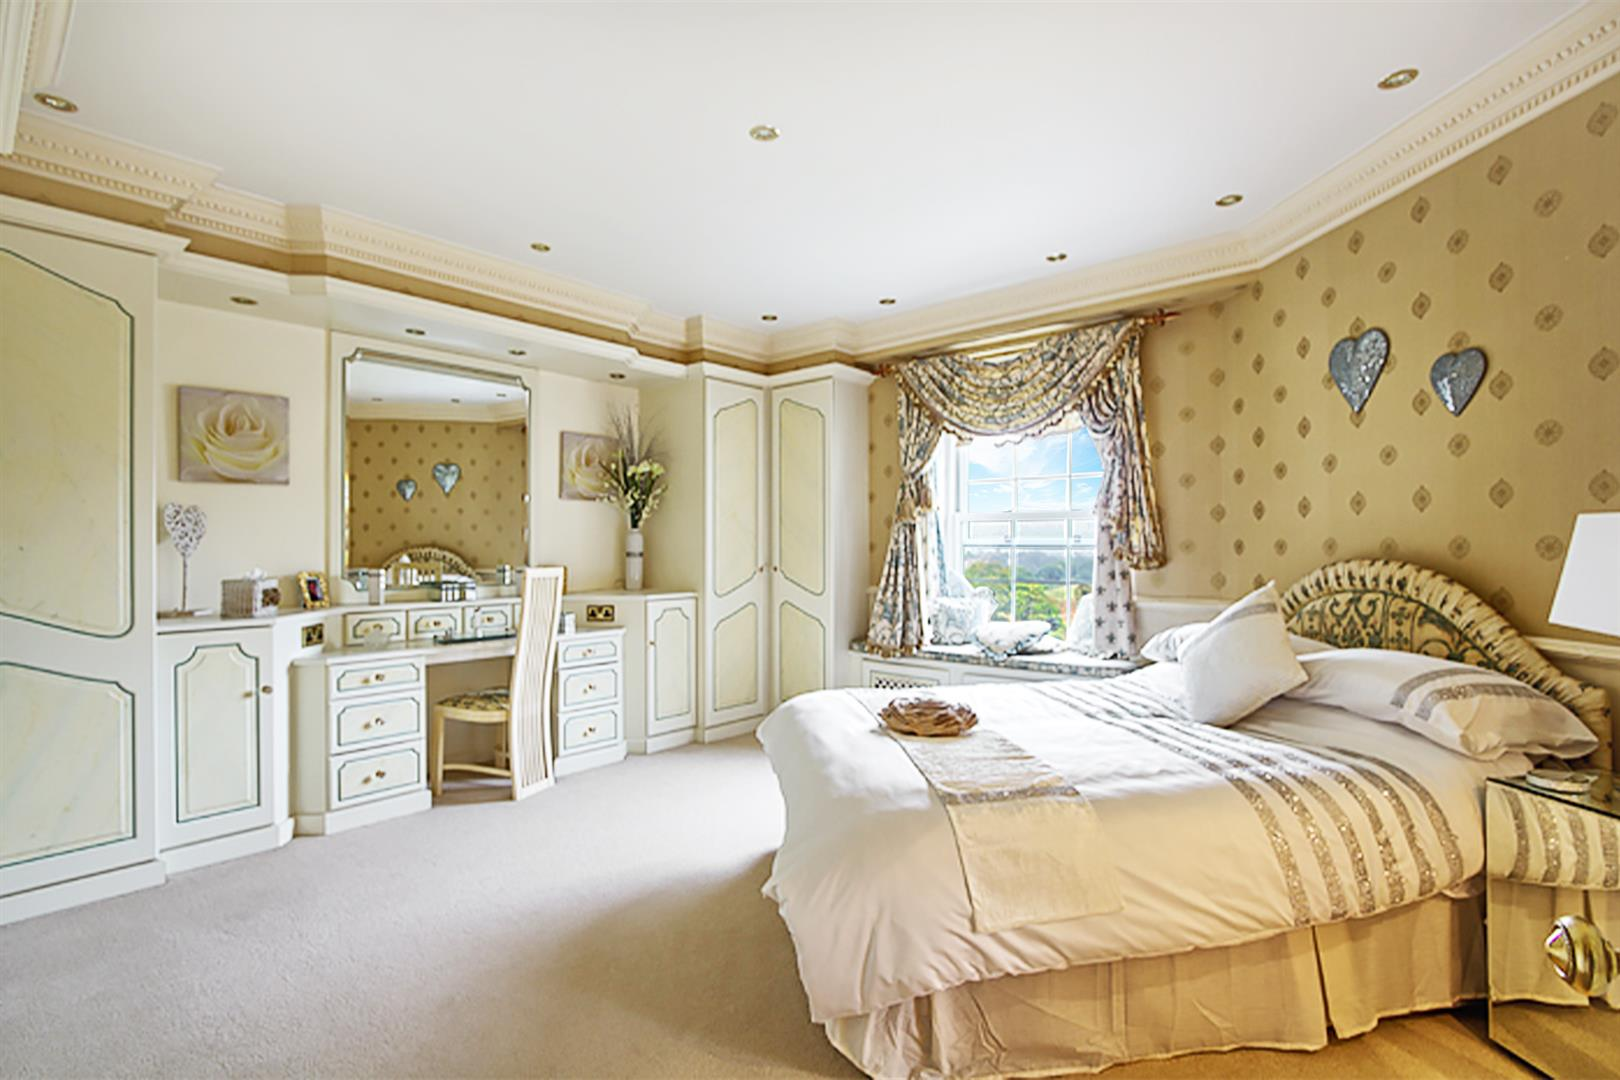 4 bedroom house For Sale in Bolton - master bed.png.